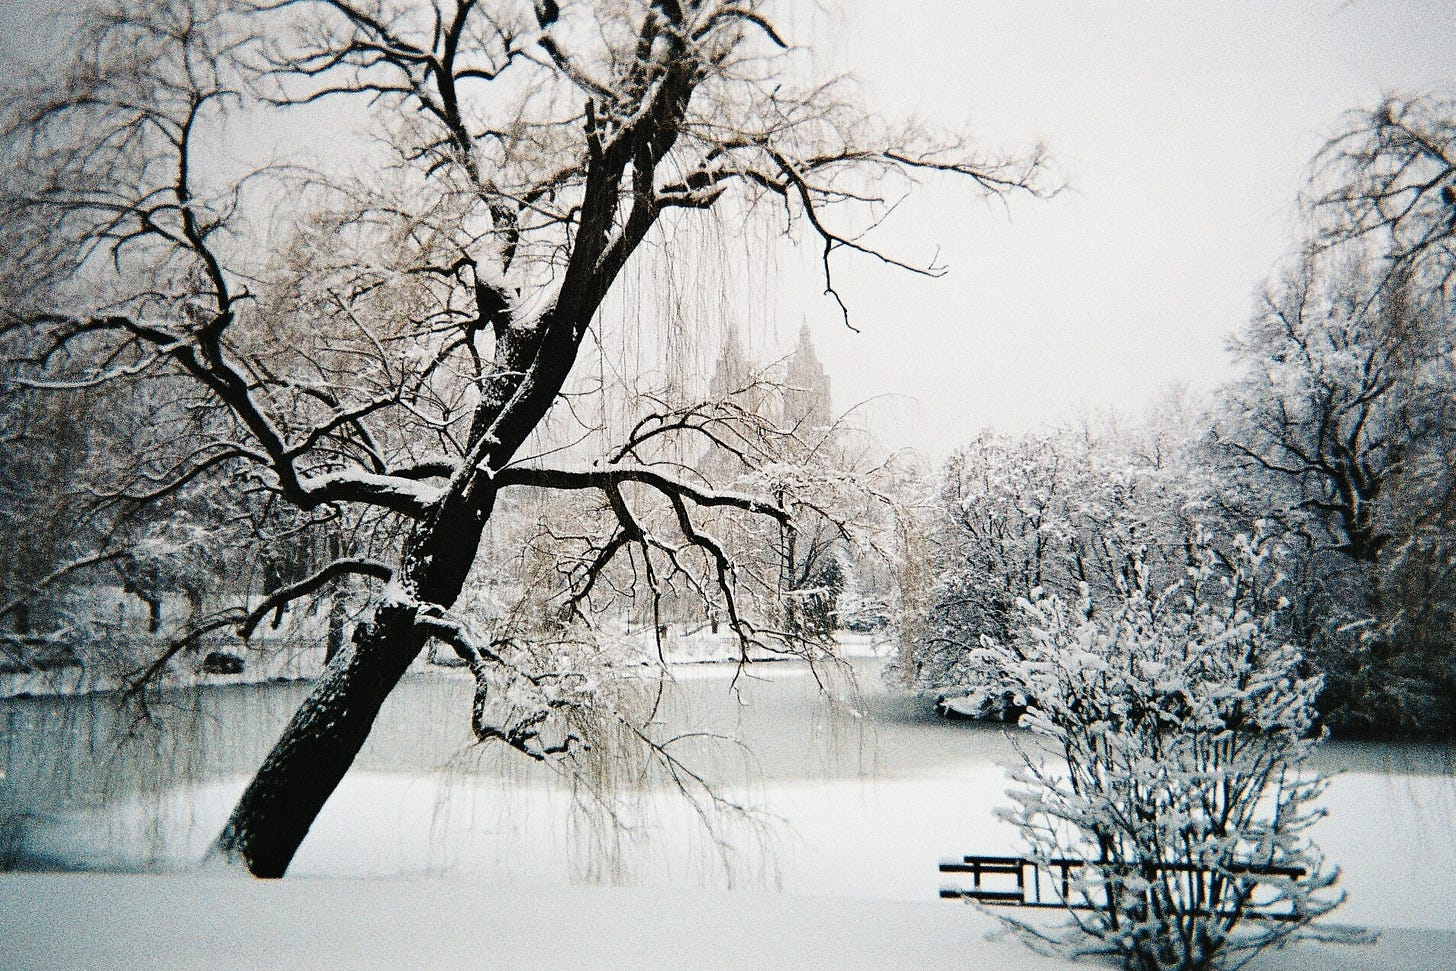 File:Central Park under snow, NYC, February 2010.jpg - Wikimedia Commons